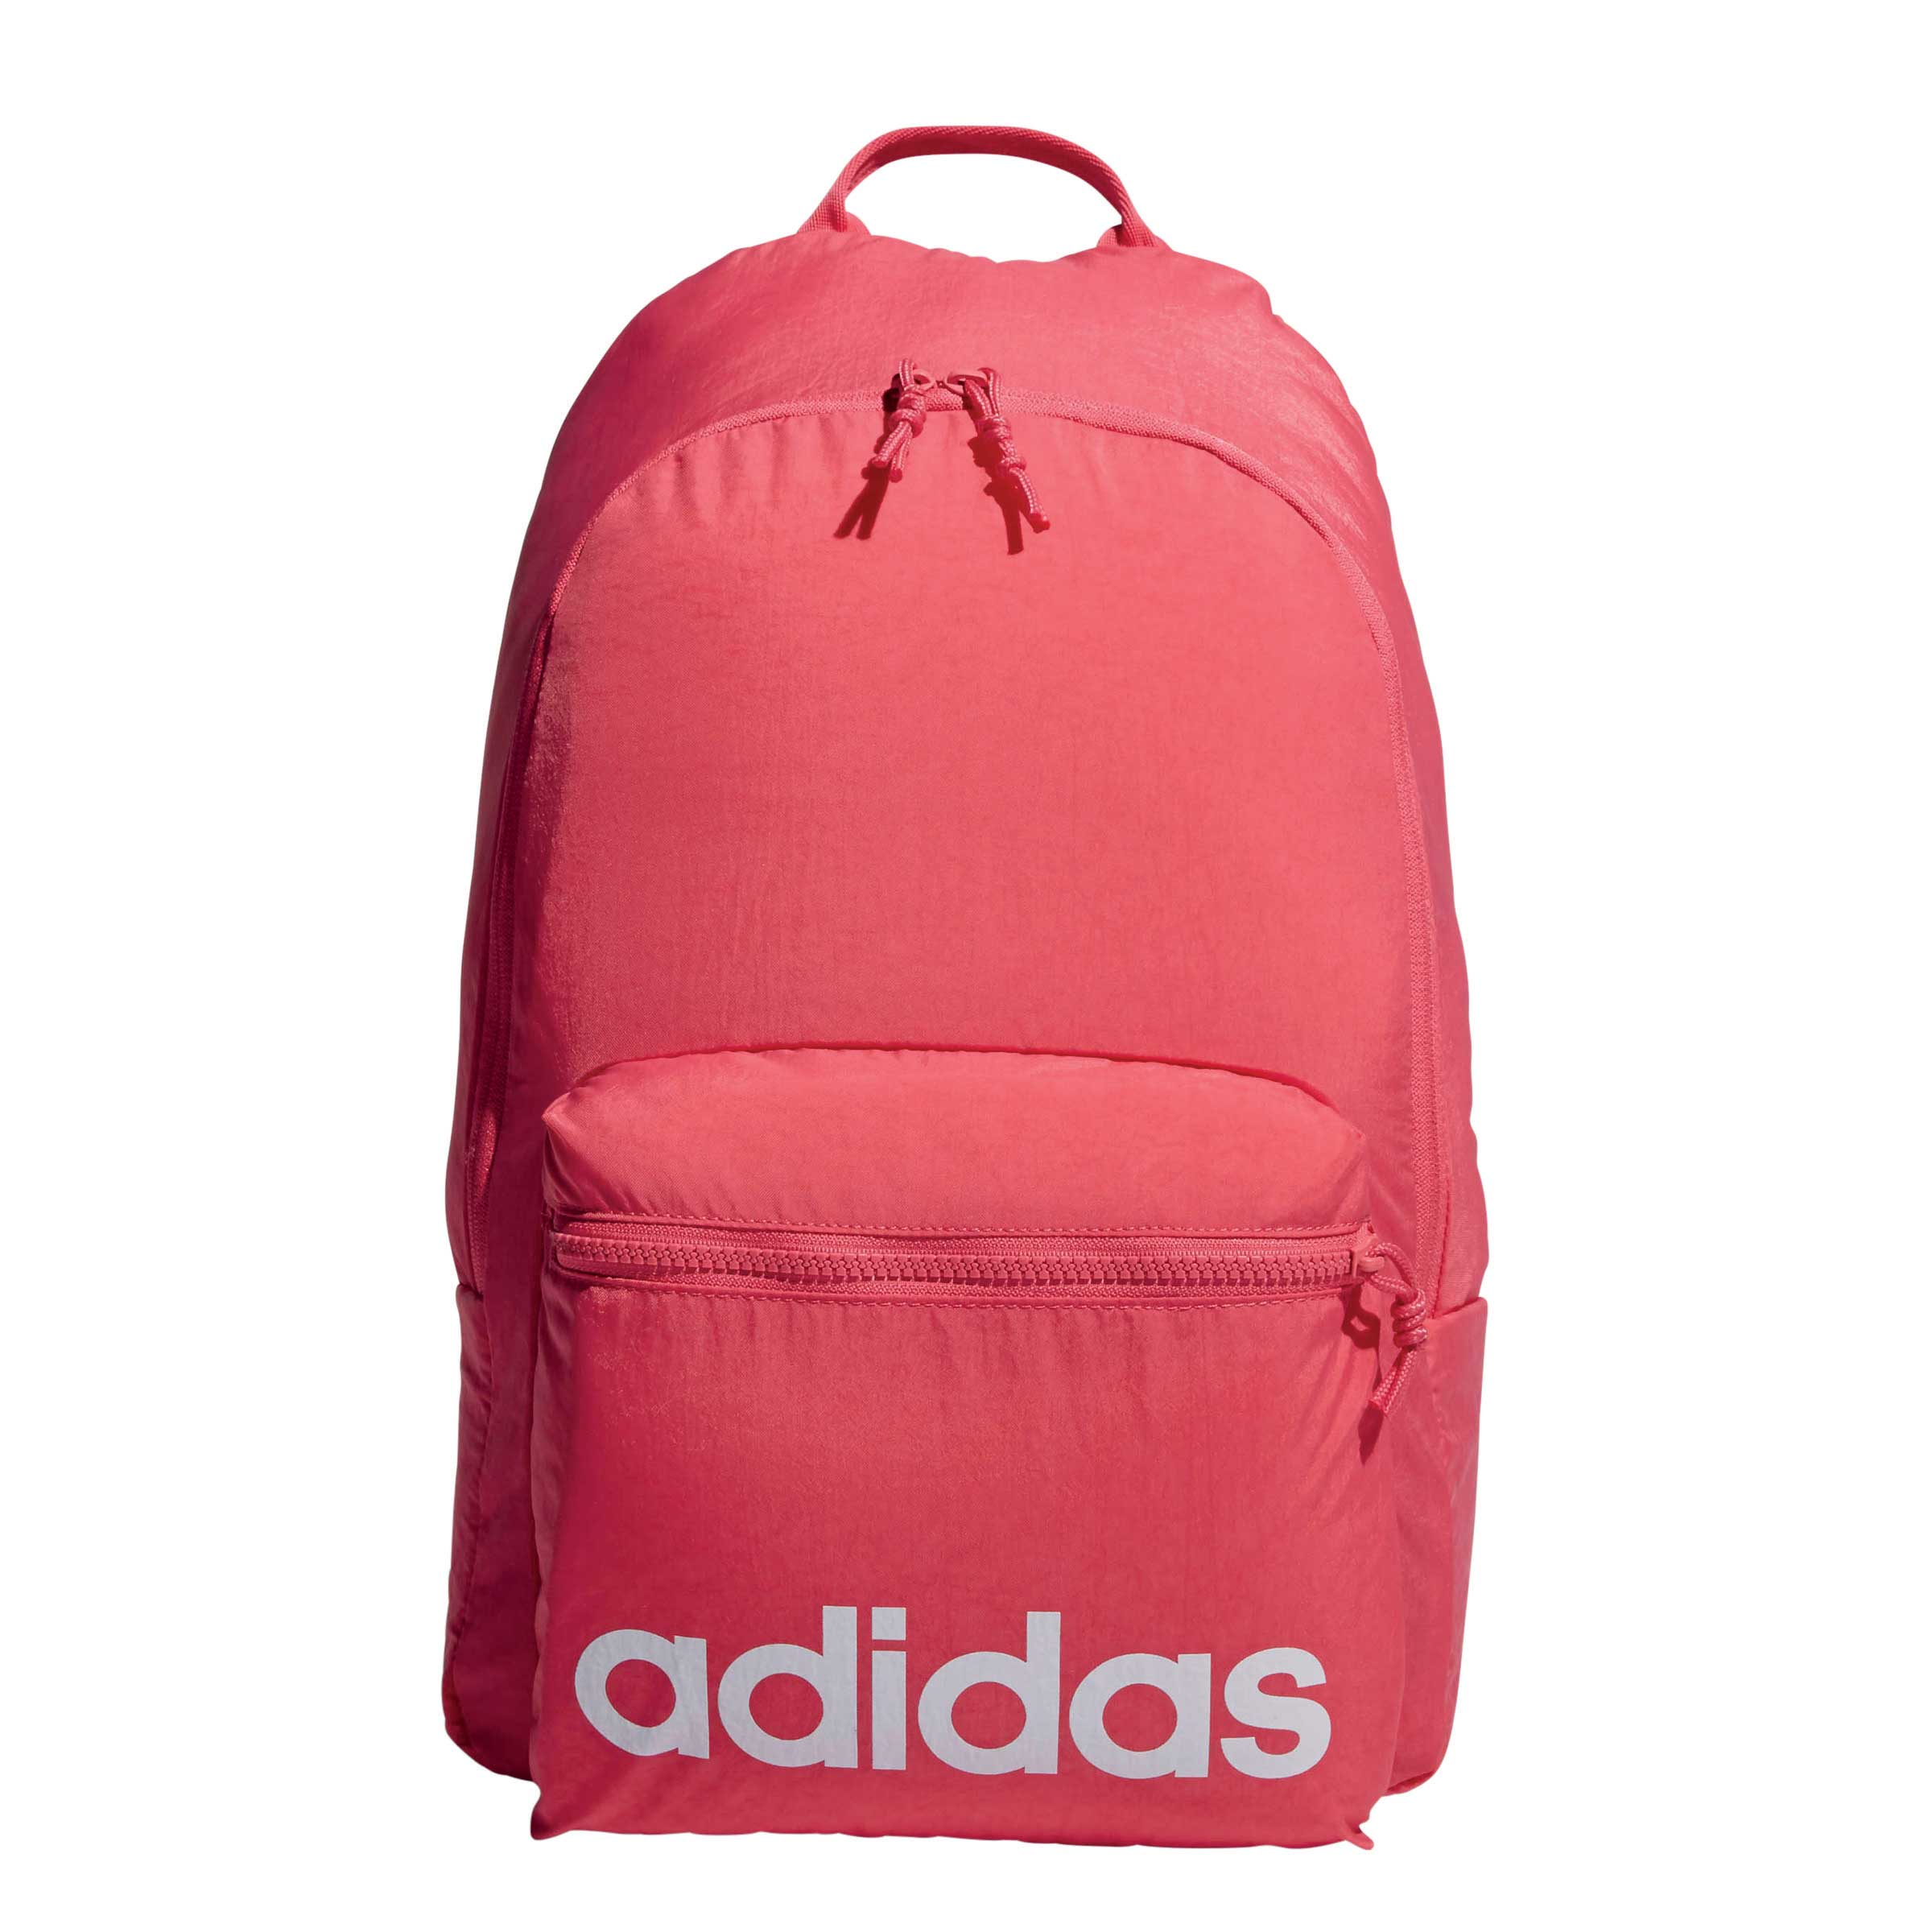 57ebc776ee0e adidas CORE Mädchen Rucksack BACKPACK DAILY DM6159 One size